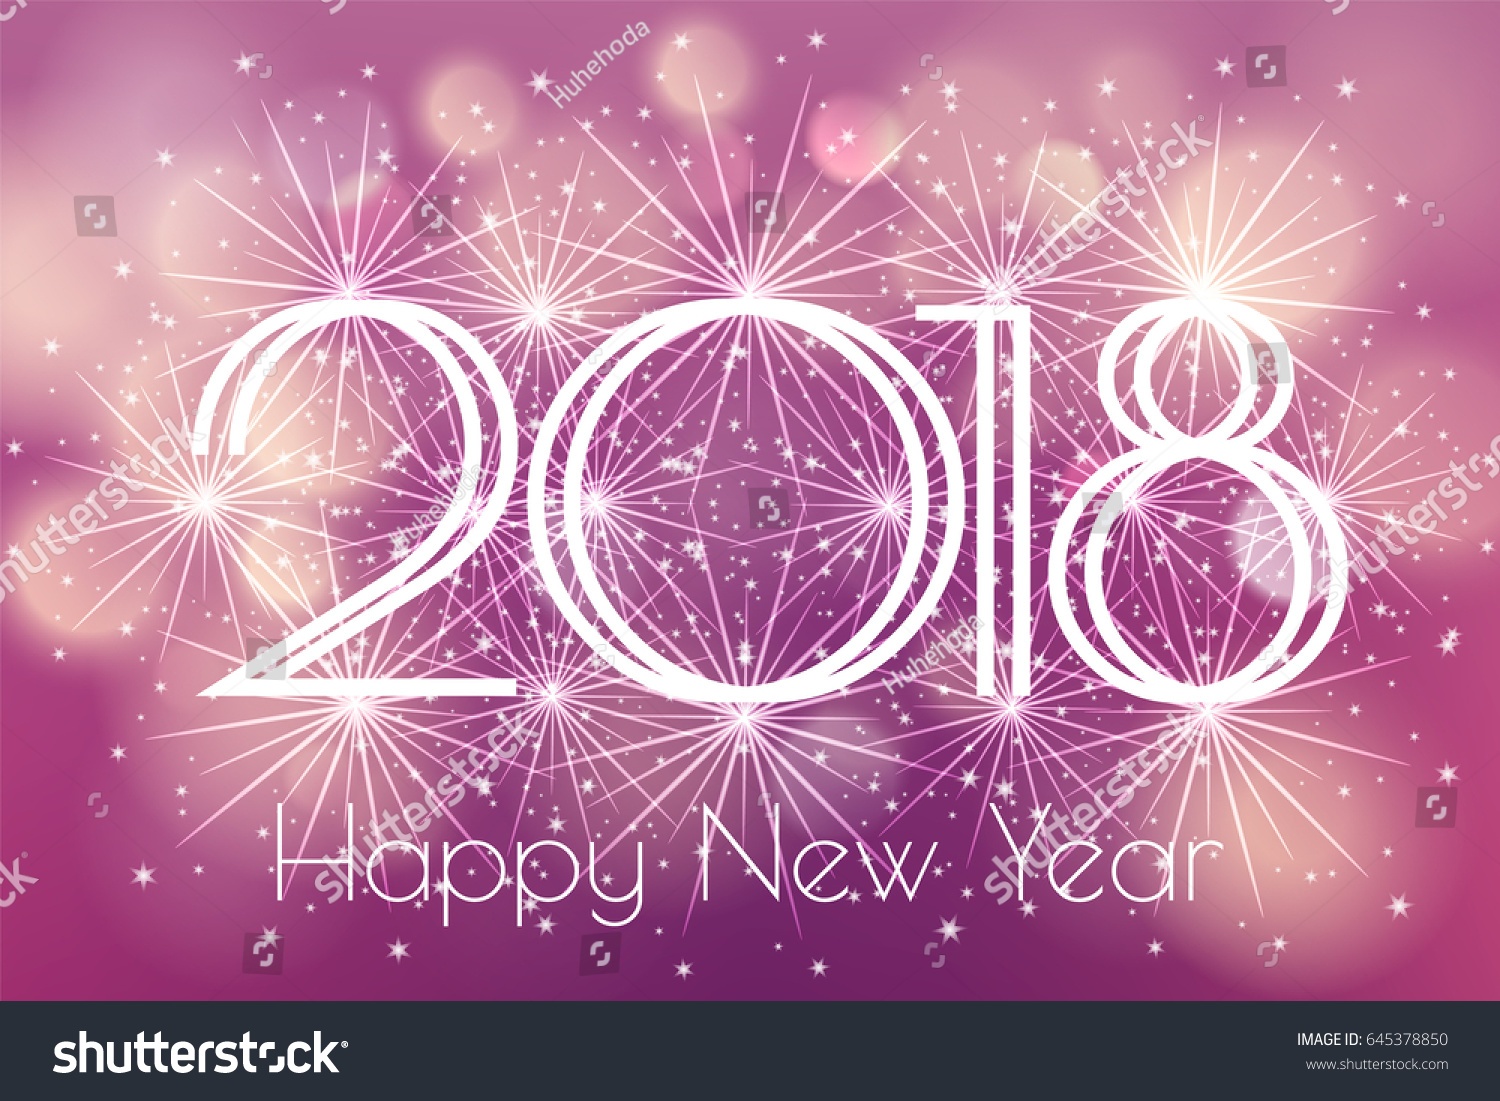 happy new year 2018 card with glowing fireworks fire on blurred purple violet background poster